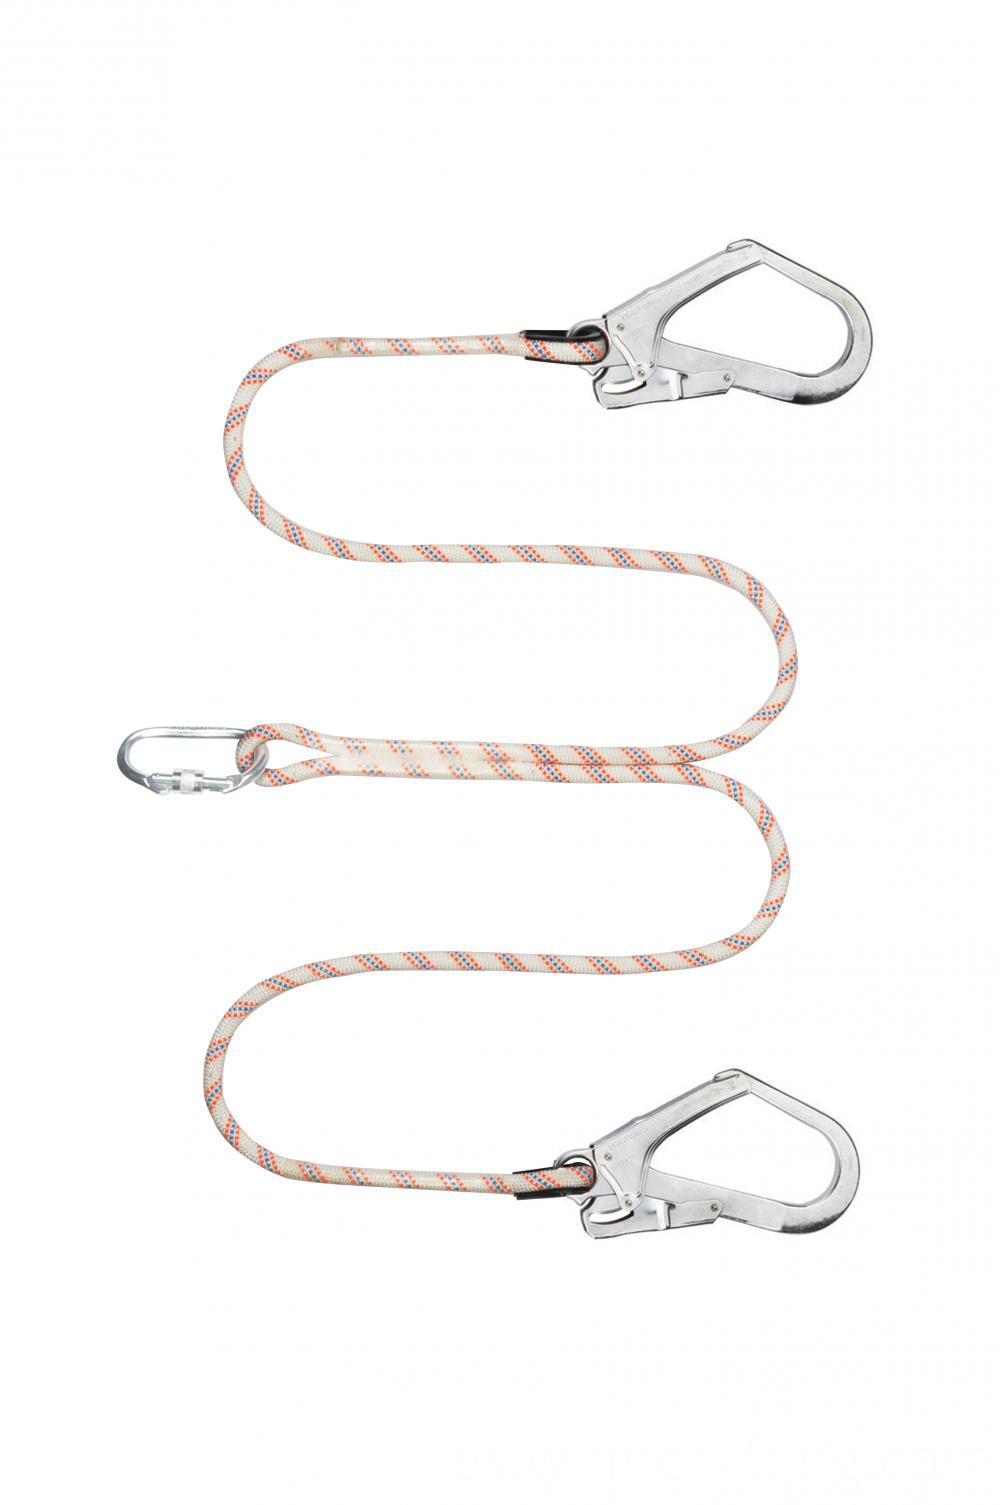 Safety Rope 1858008-1